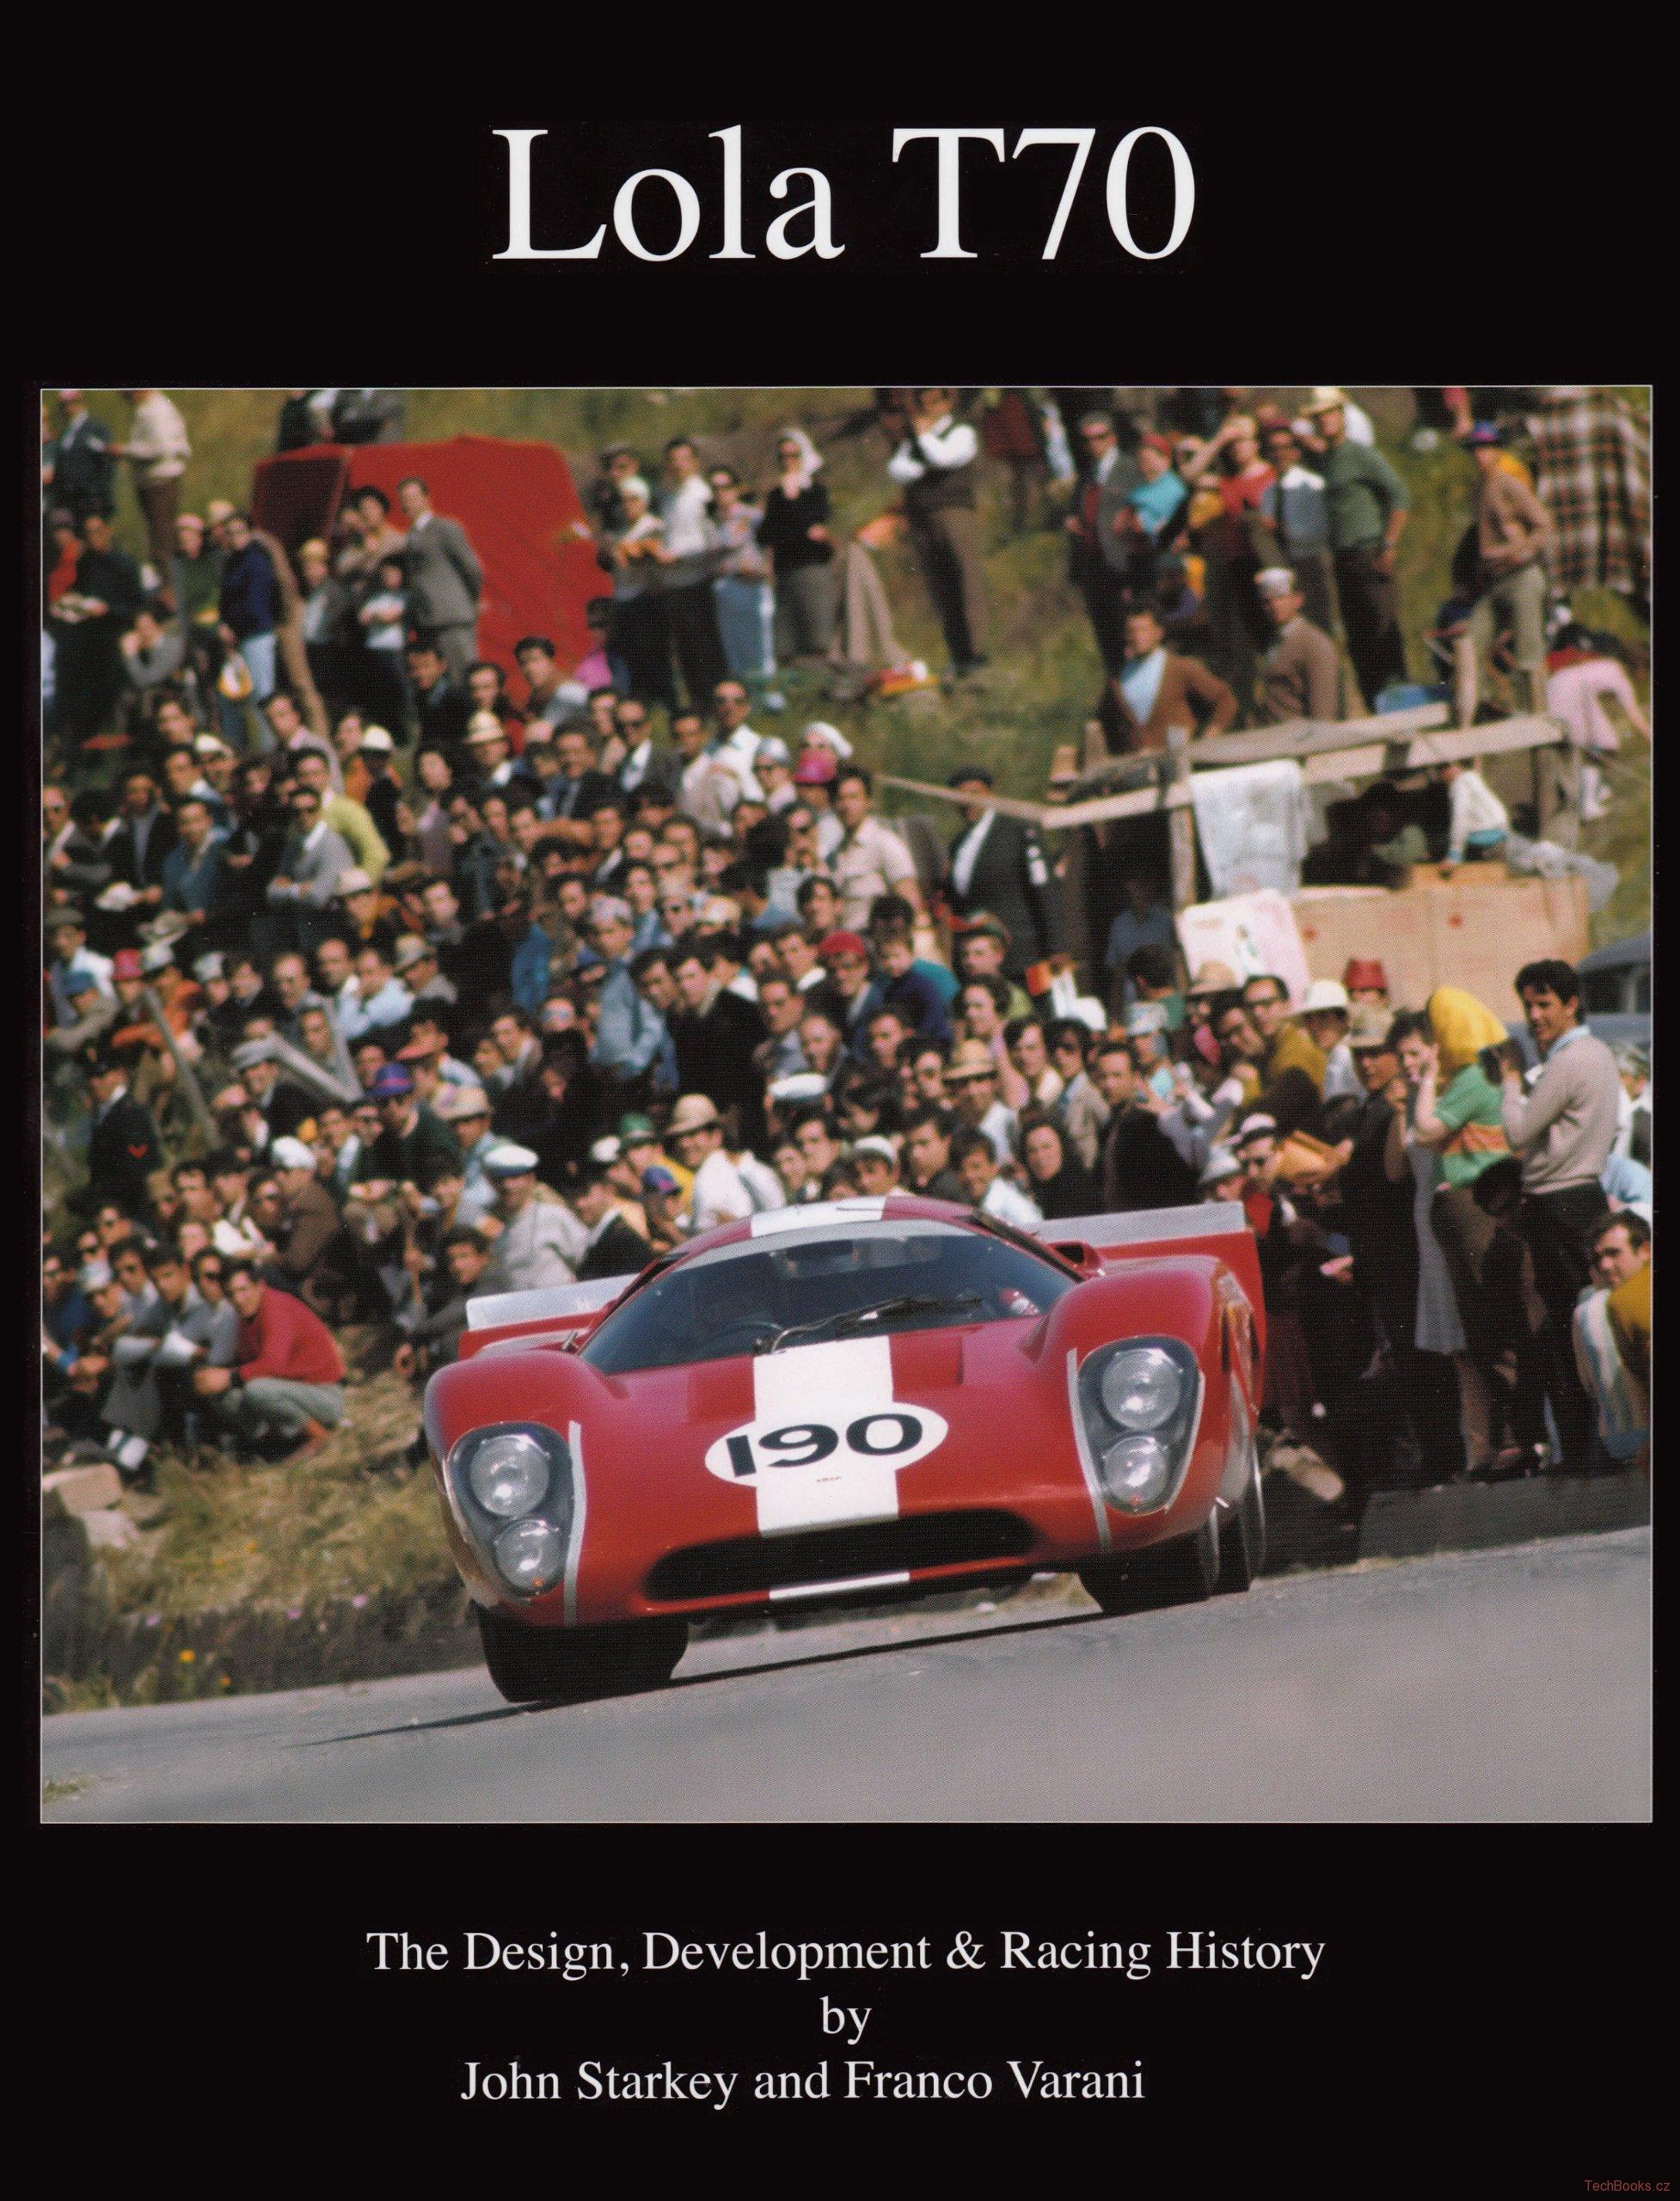 Lola T70, The Design Development & Racing History